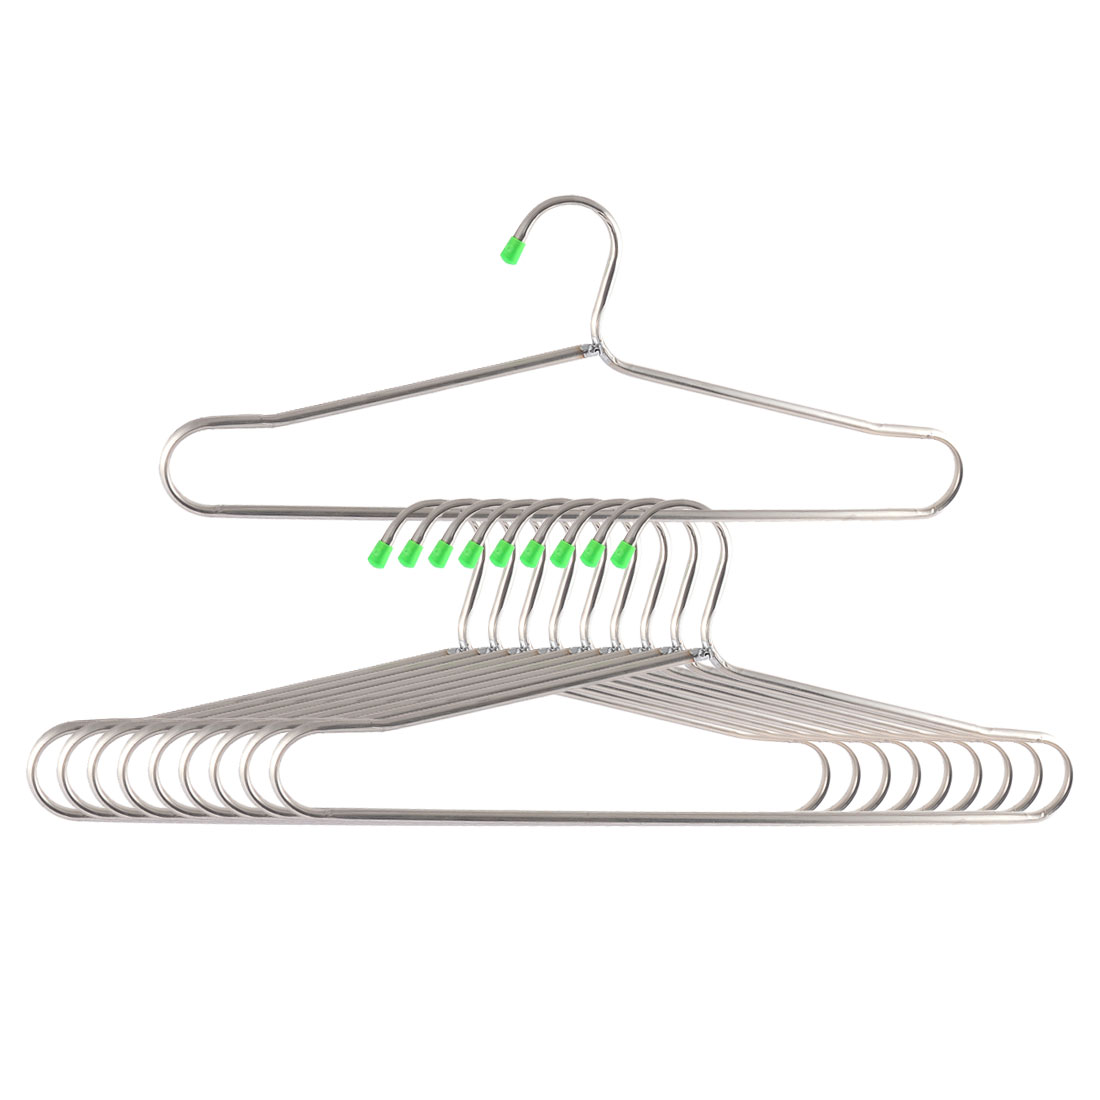 Household Metal Nonslip Clothes Towel Skirts Hangers Hooks Silver Tone 10pcs